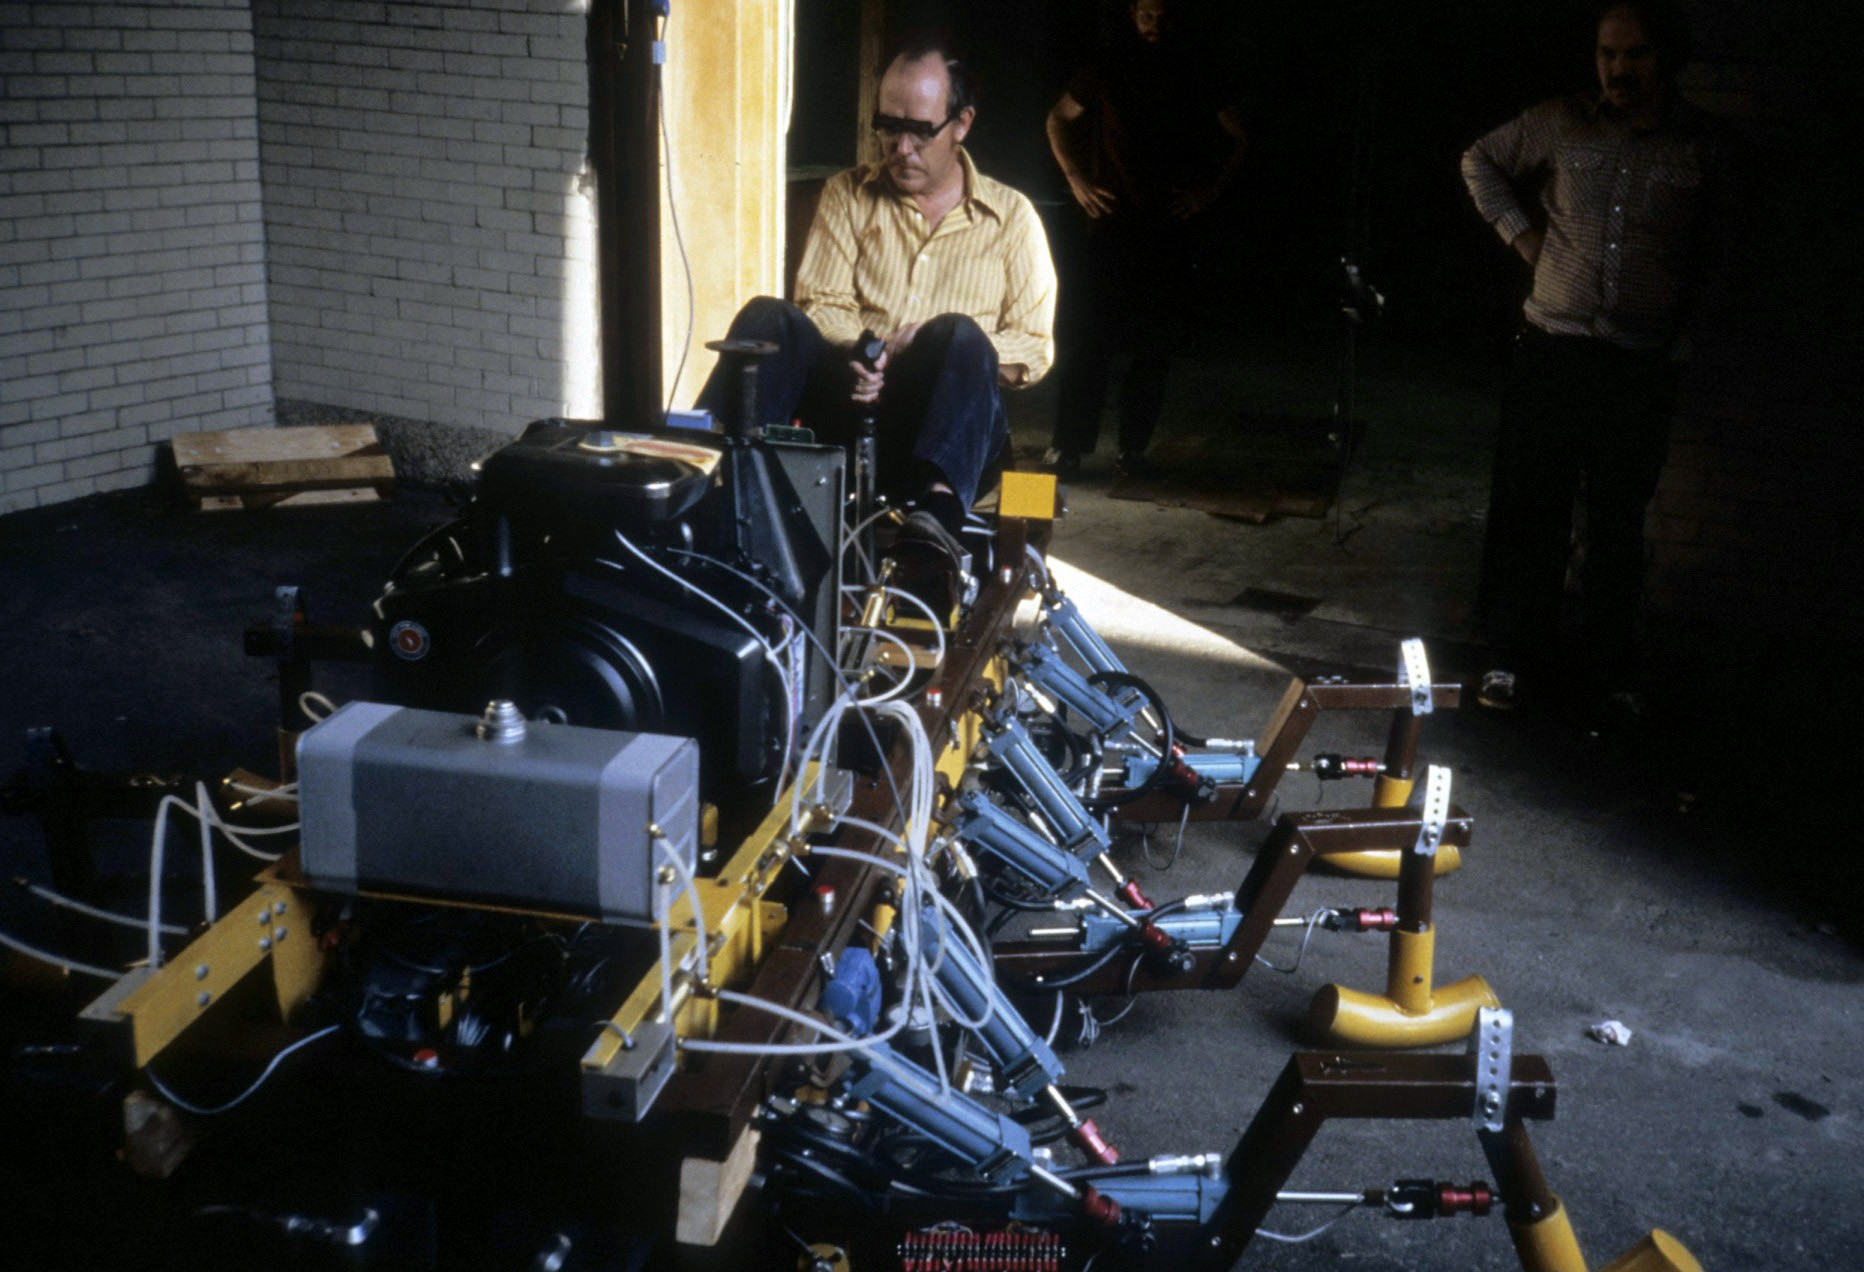 a biography of ivan sutherland Ivan edward sutherland was born may 16, 1938 in hastings, nebraska, united states his ancestry is from scotland and new zealand, despite his claim that he was named for his mother's fictitious russian lover.